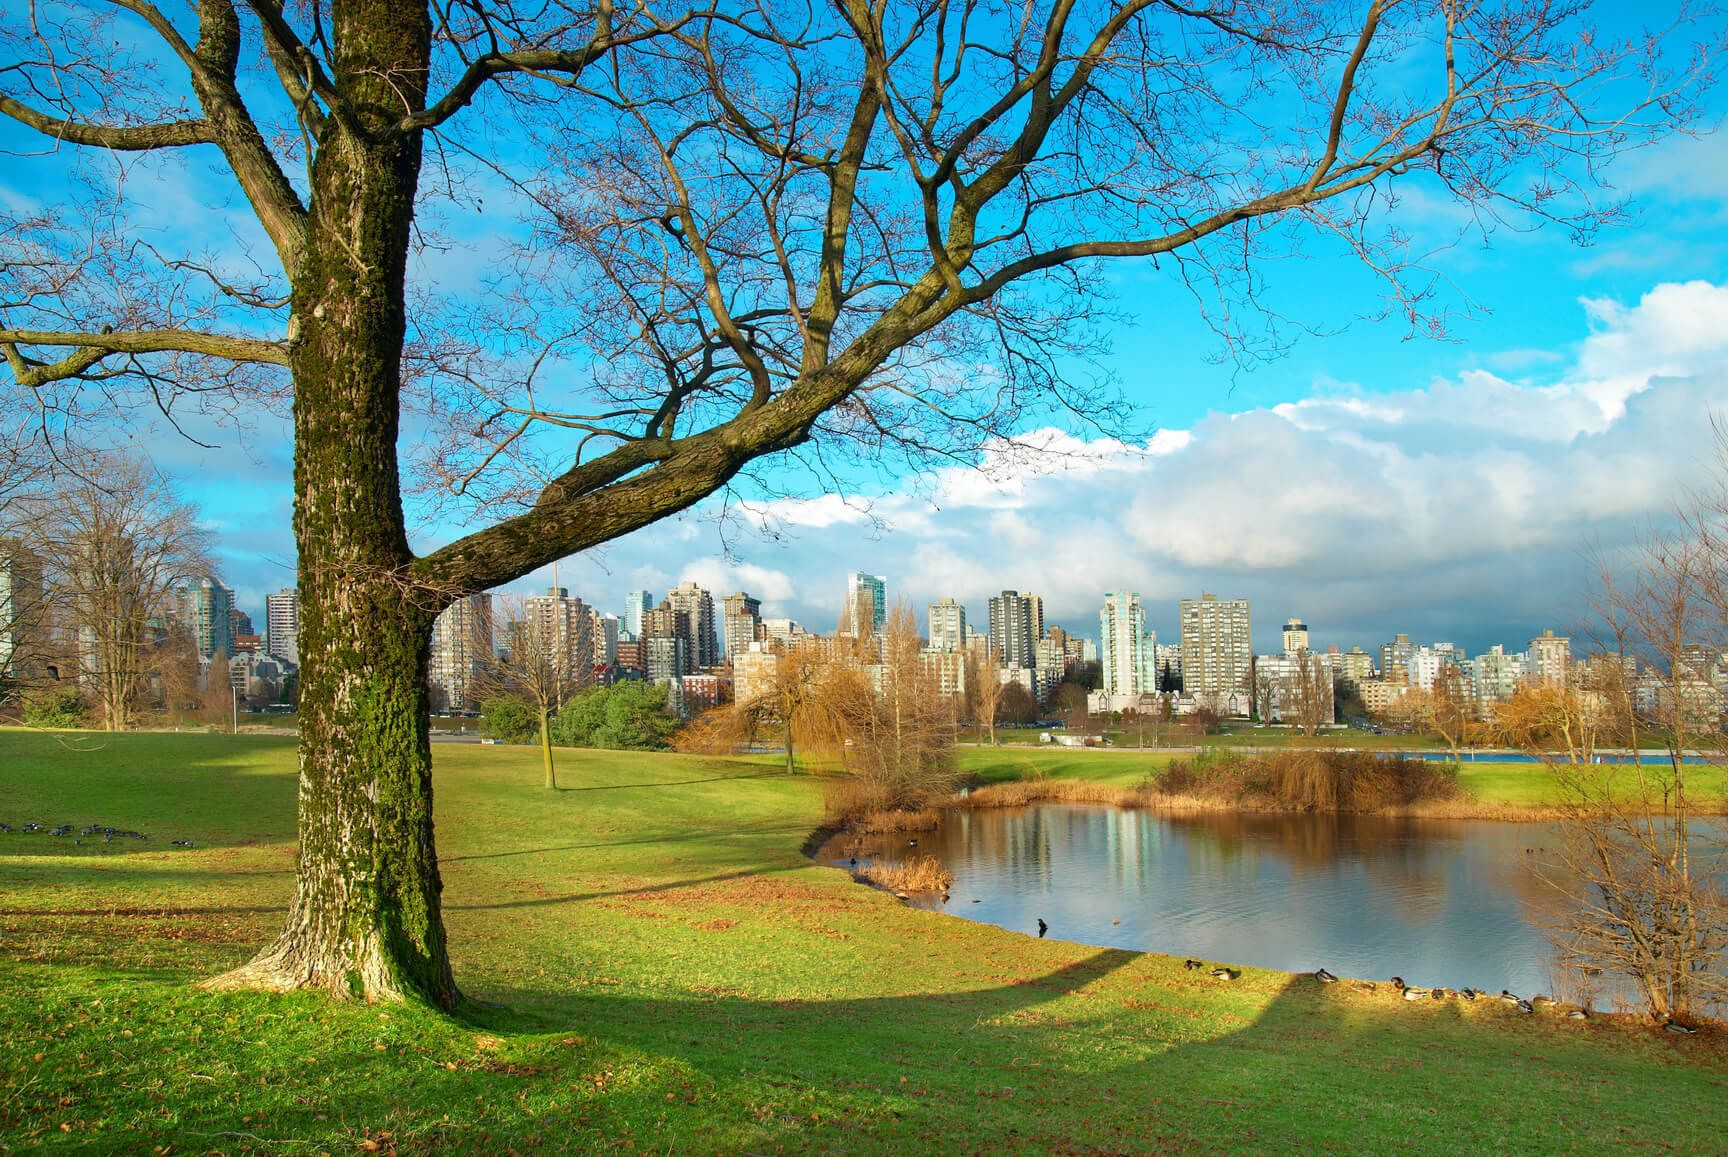 Cheap flights from Vienna, Austria to Vancouver, Canada